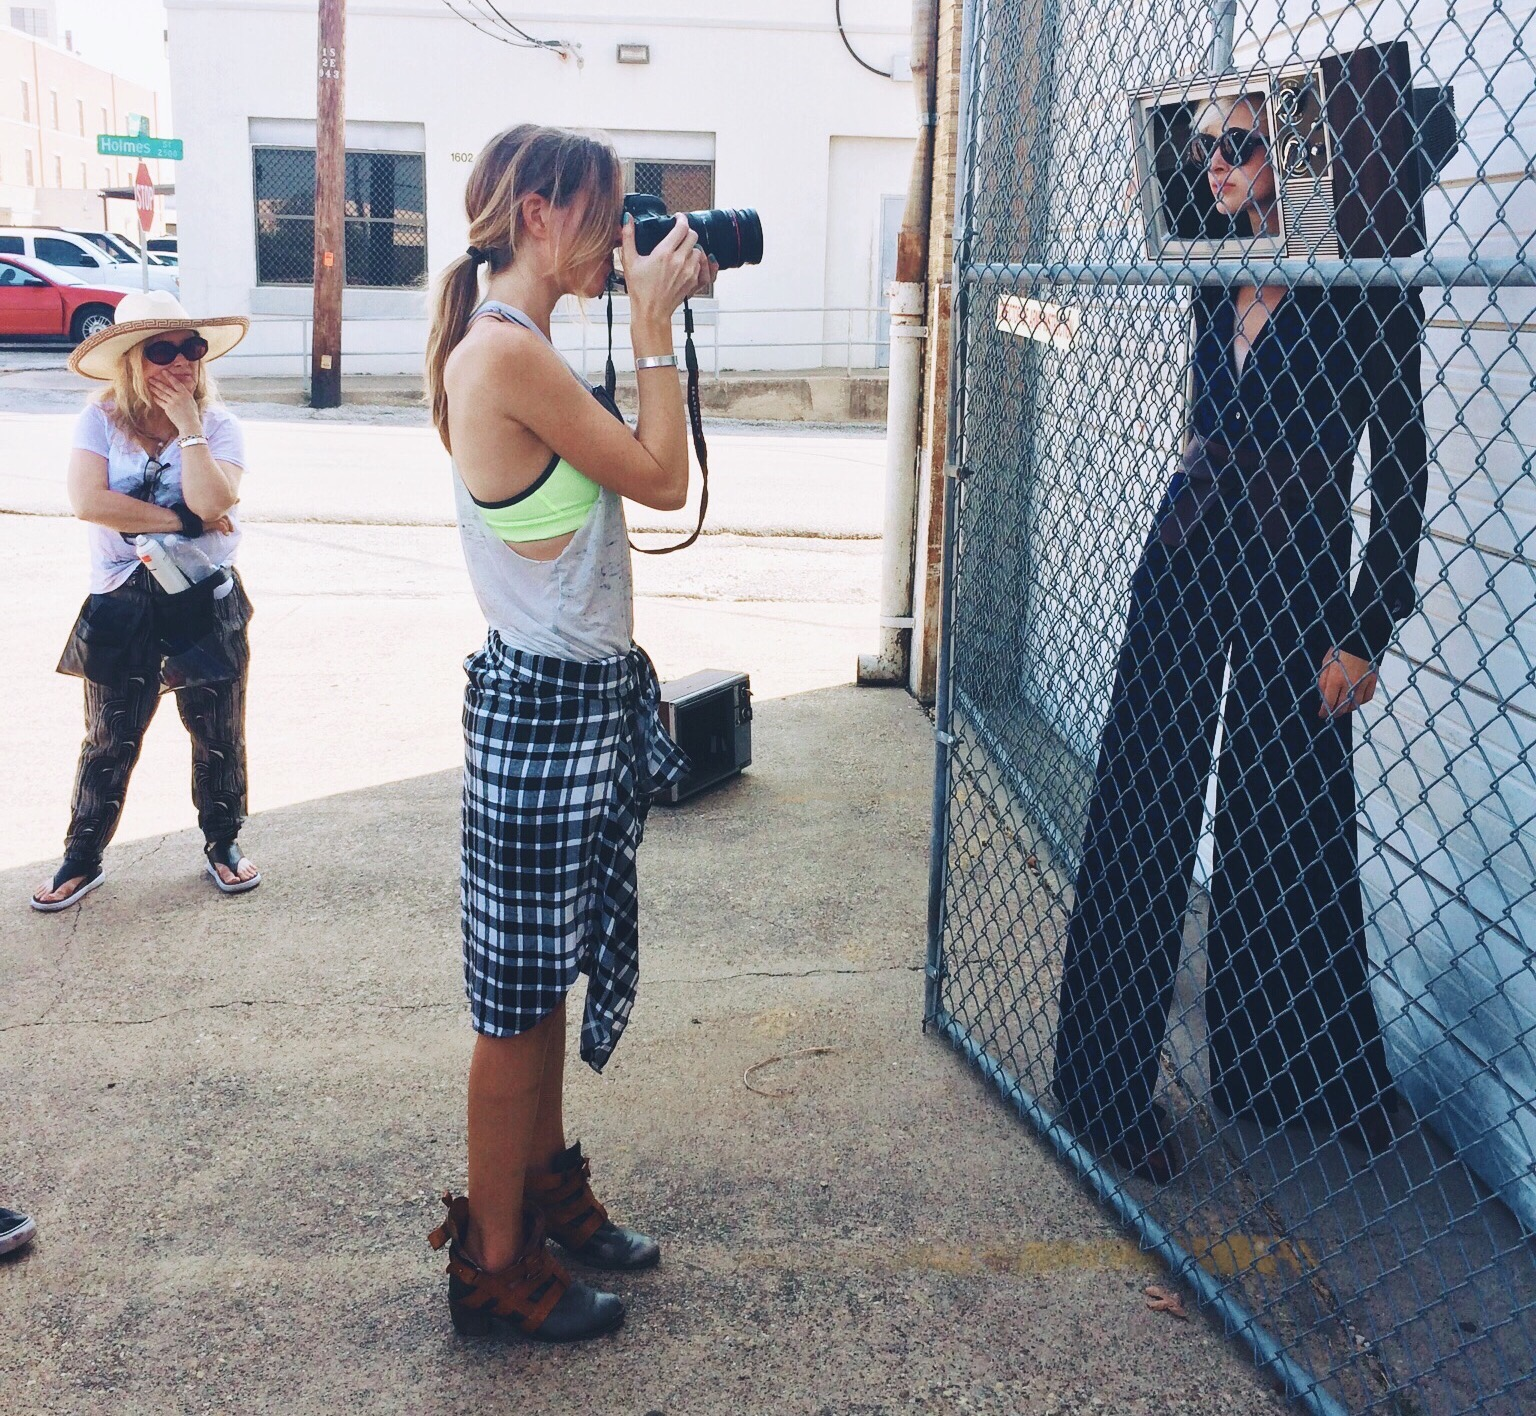 On location in Dallas for fashion photography